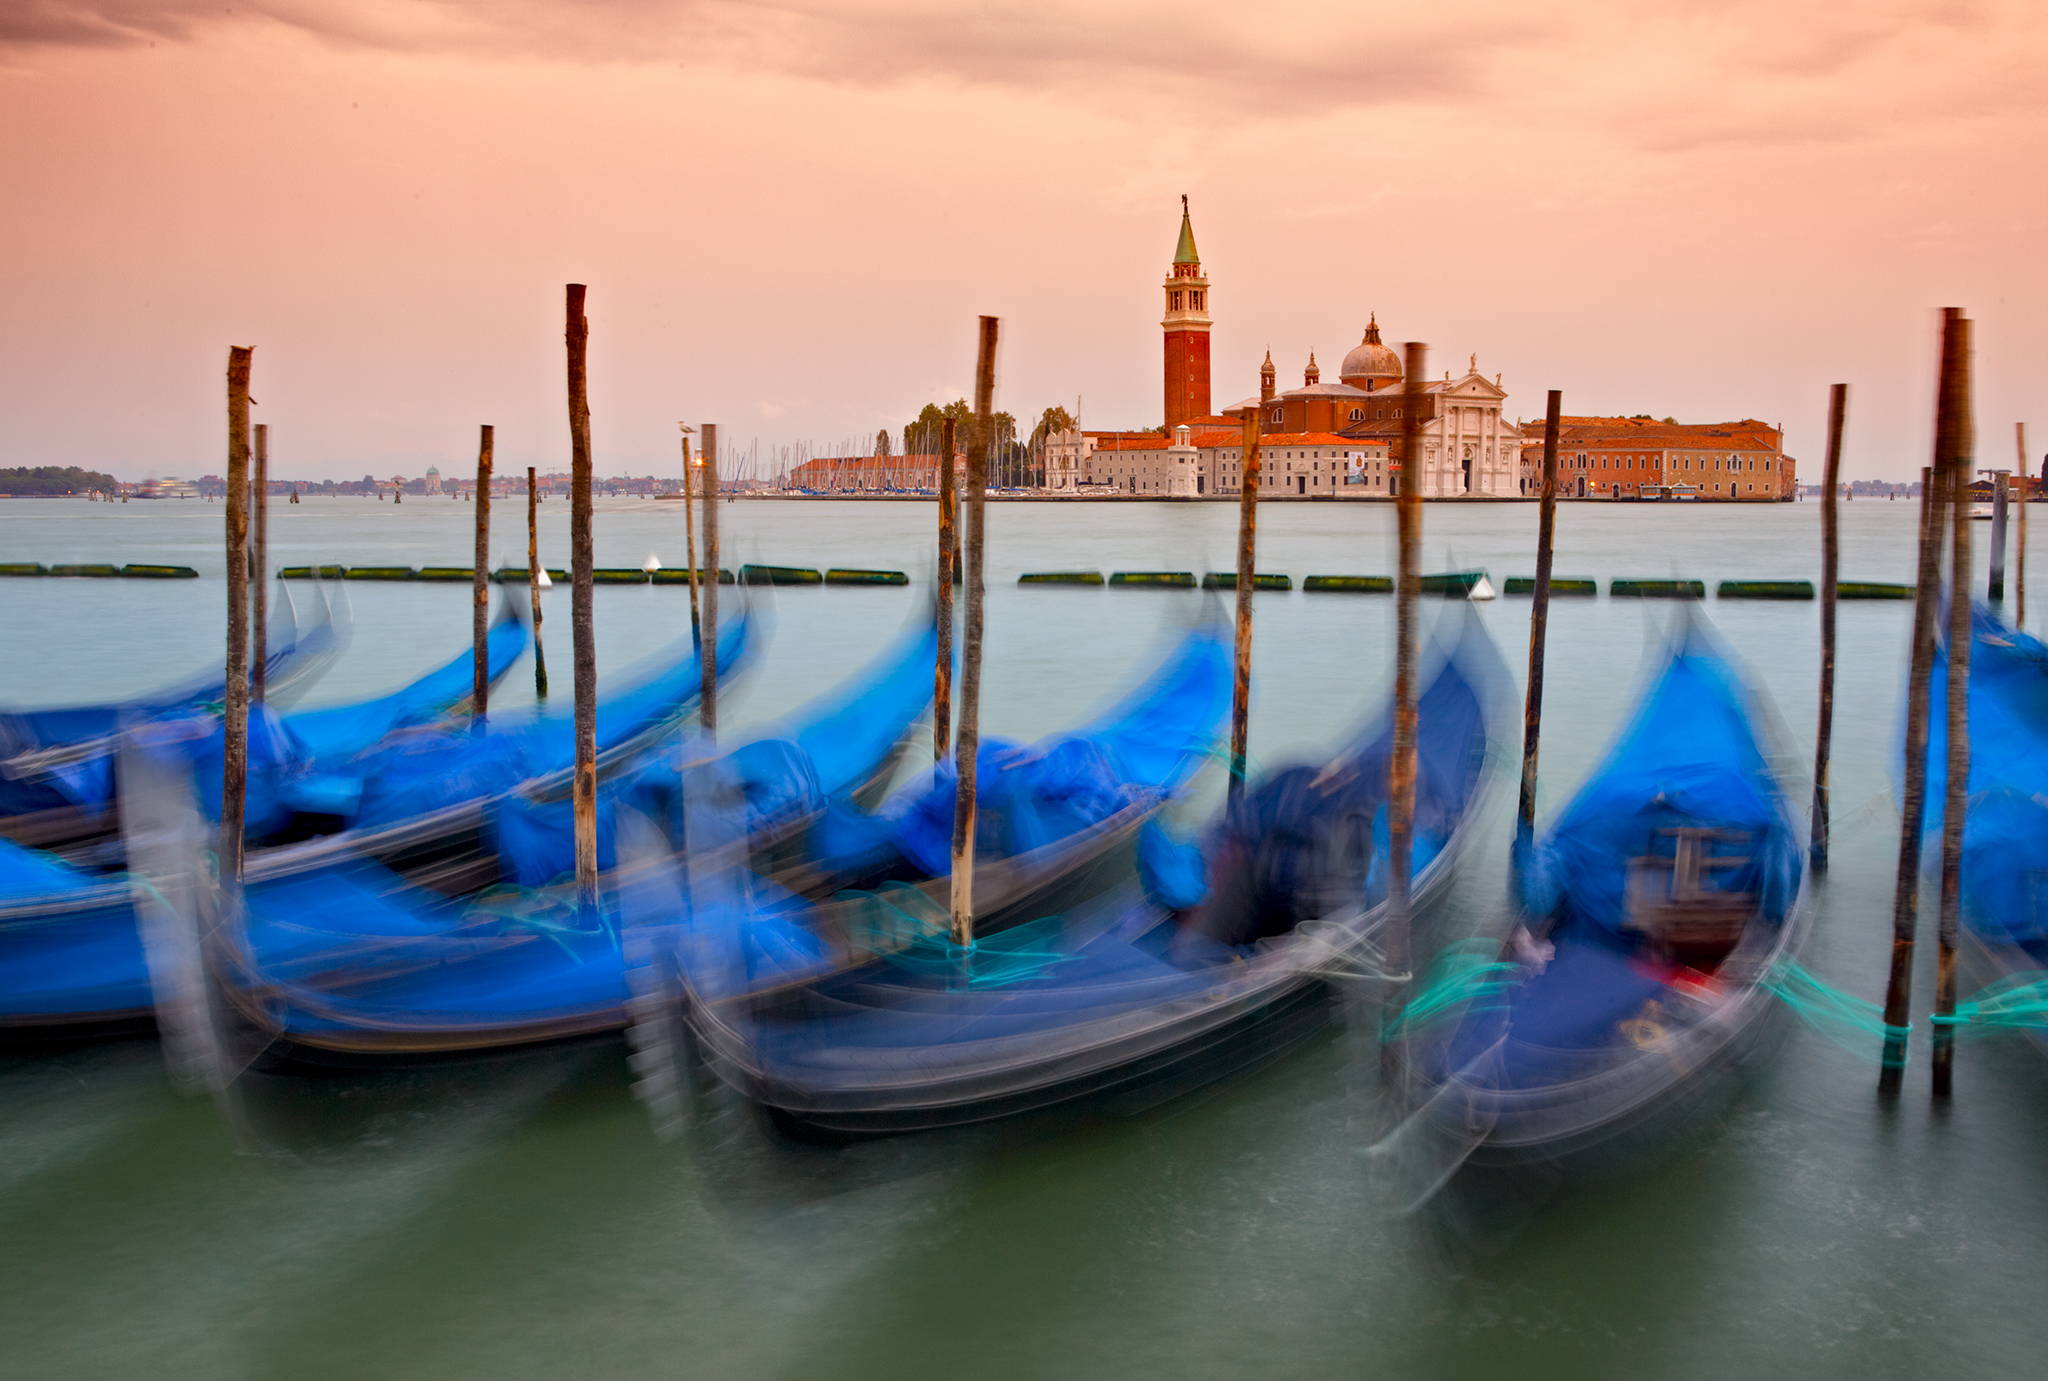 The Gondalas - early morning view from San Marco square in Venice